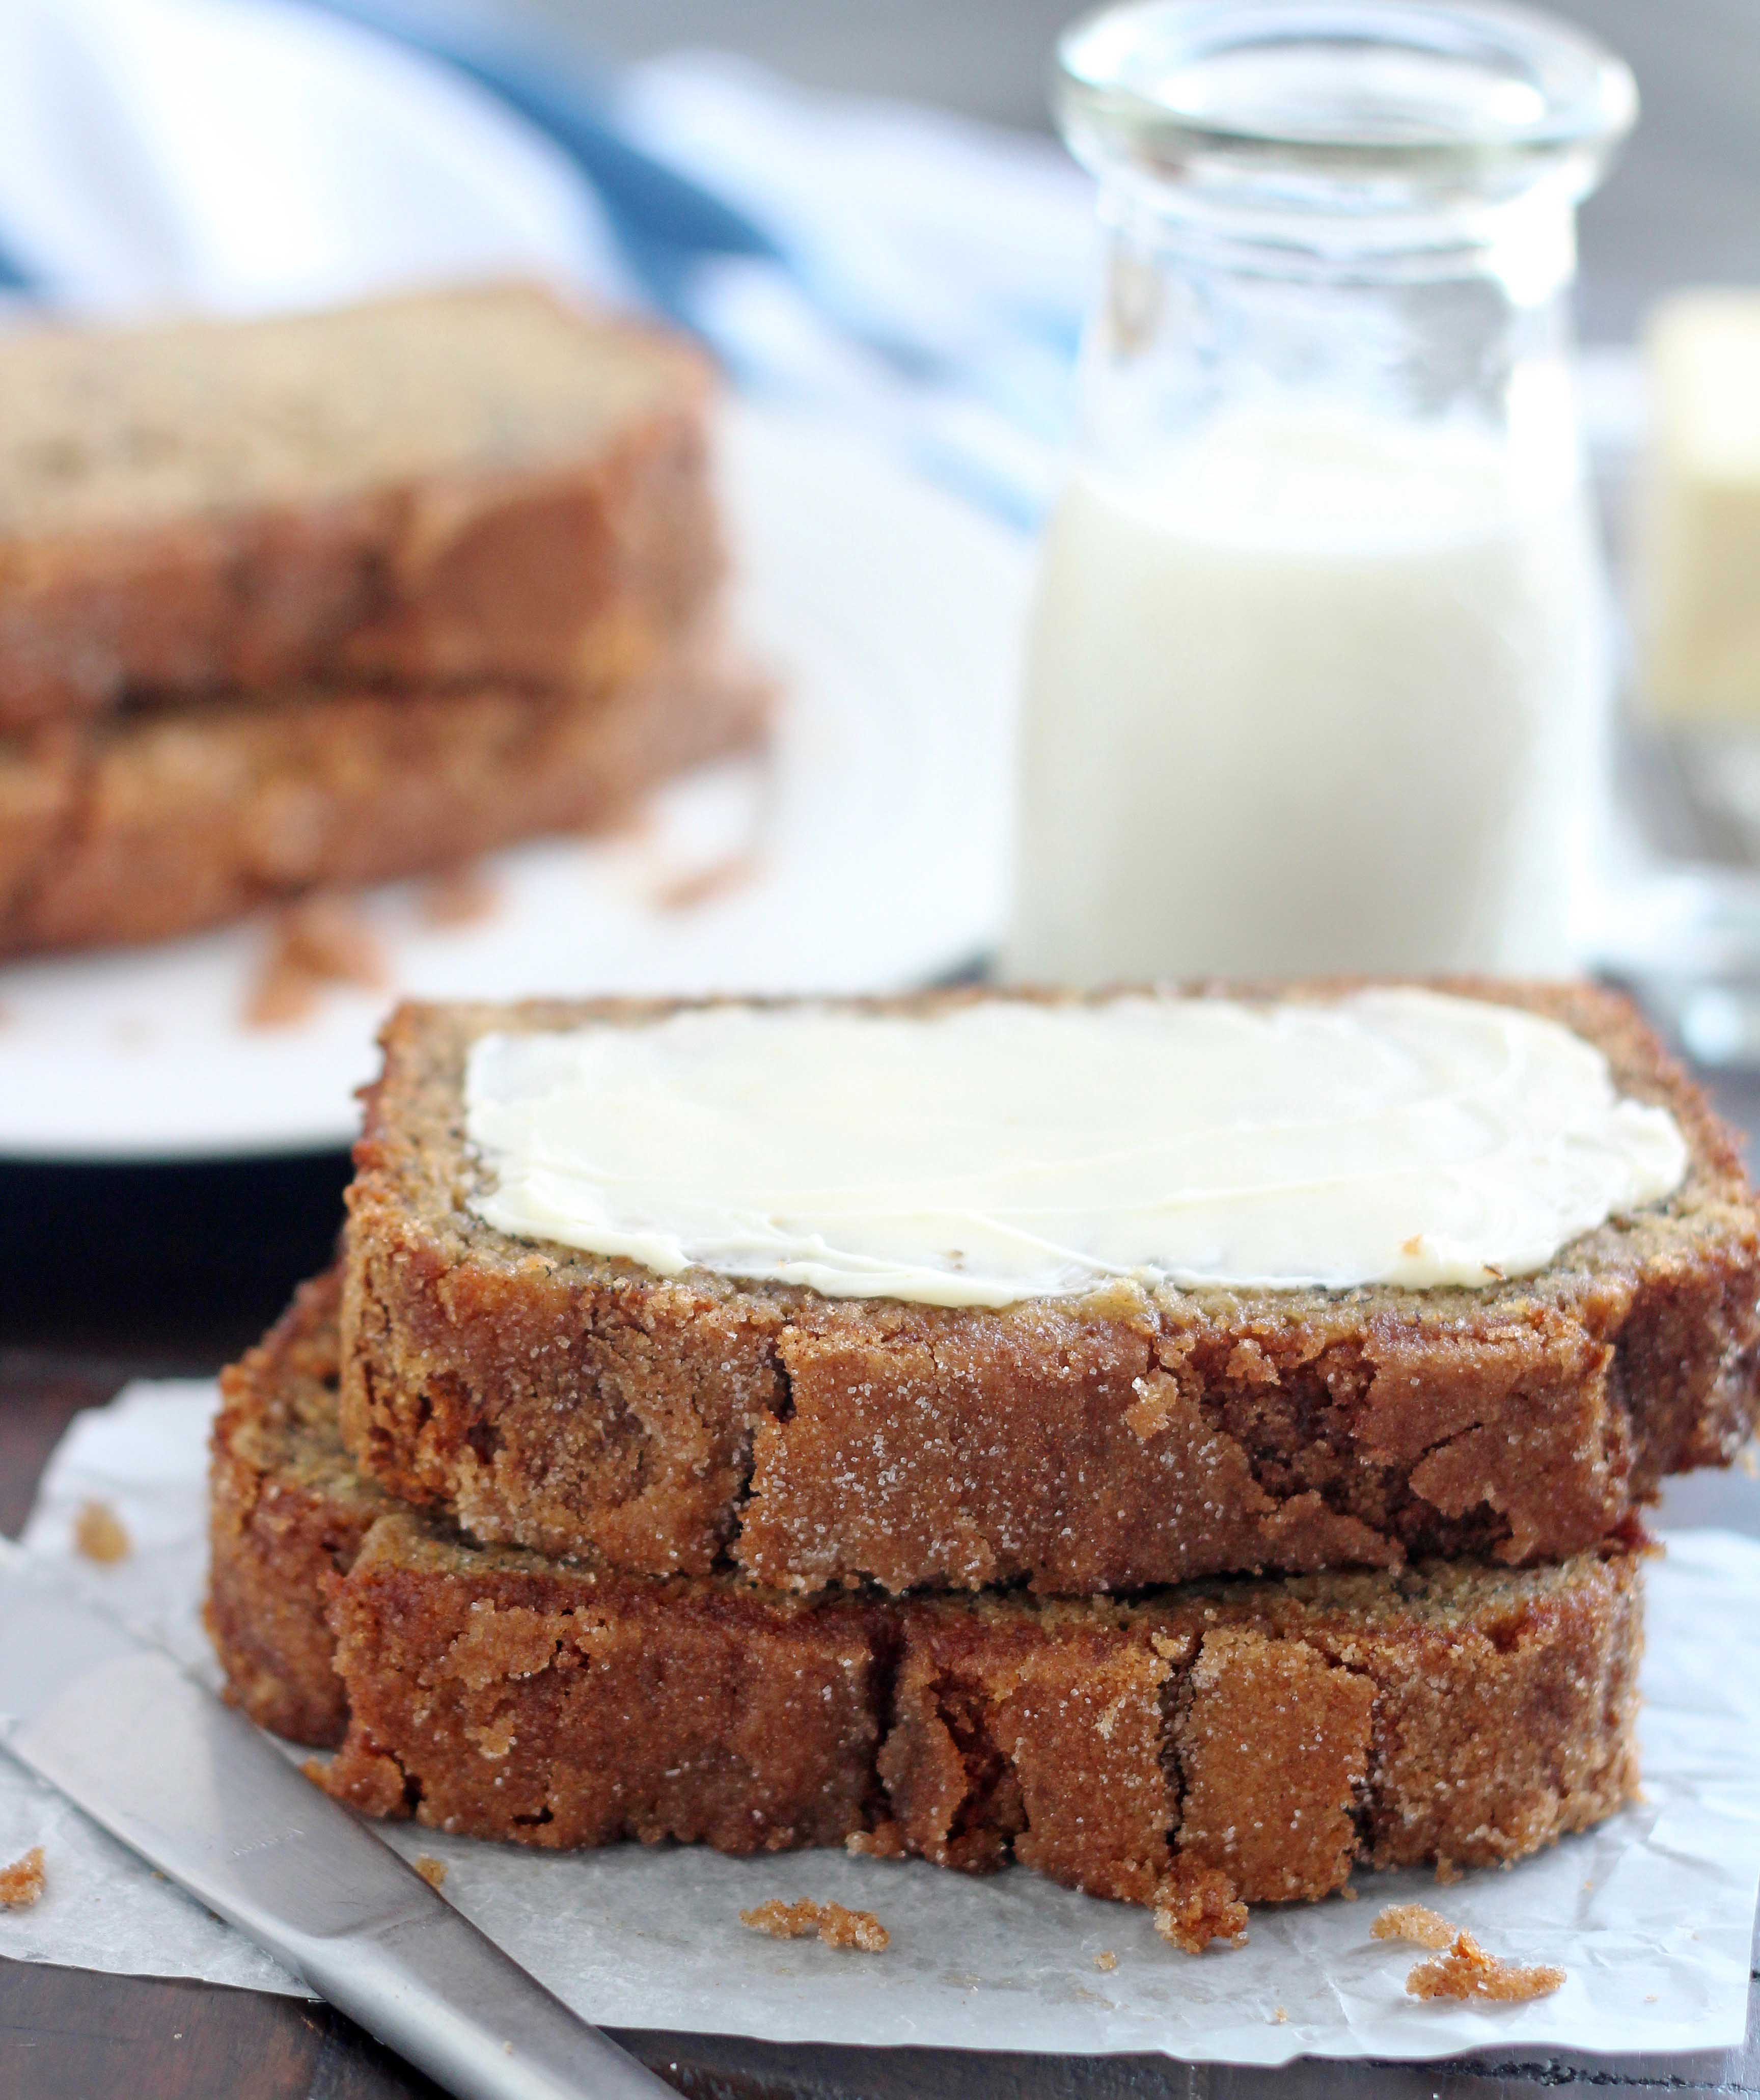 Whole grain banana bread 2018 recipe of the year 5 boys baker king arthur flour declared this whole grain banana bread their 2018 recipe of the year and for very good reason so flavorful moist and holy moly so good forumfinder Gallery